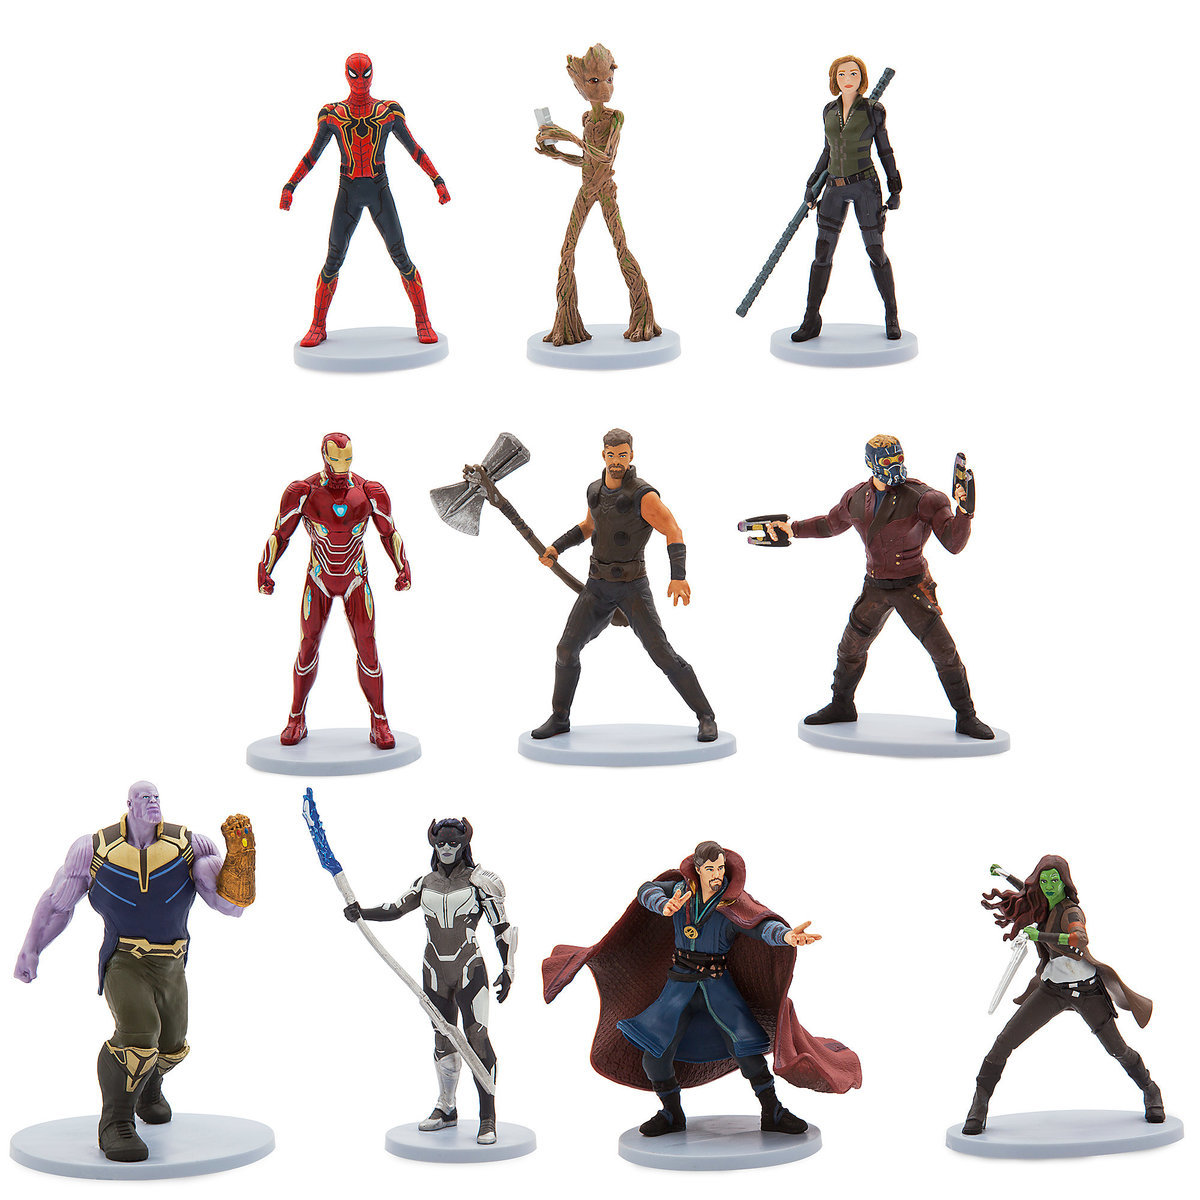 ef6ed832aa593 Product Image of Marvel s Avengers  Infinity War Deluxe Figure Set   1